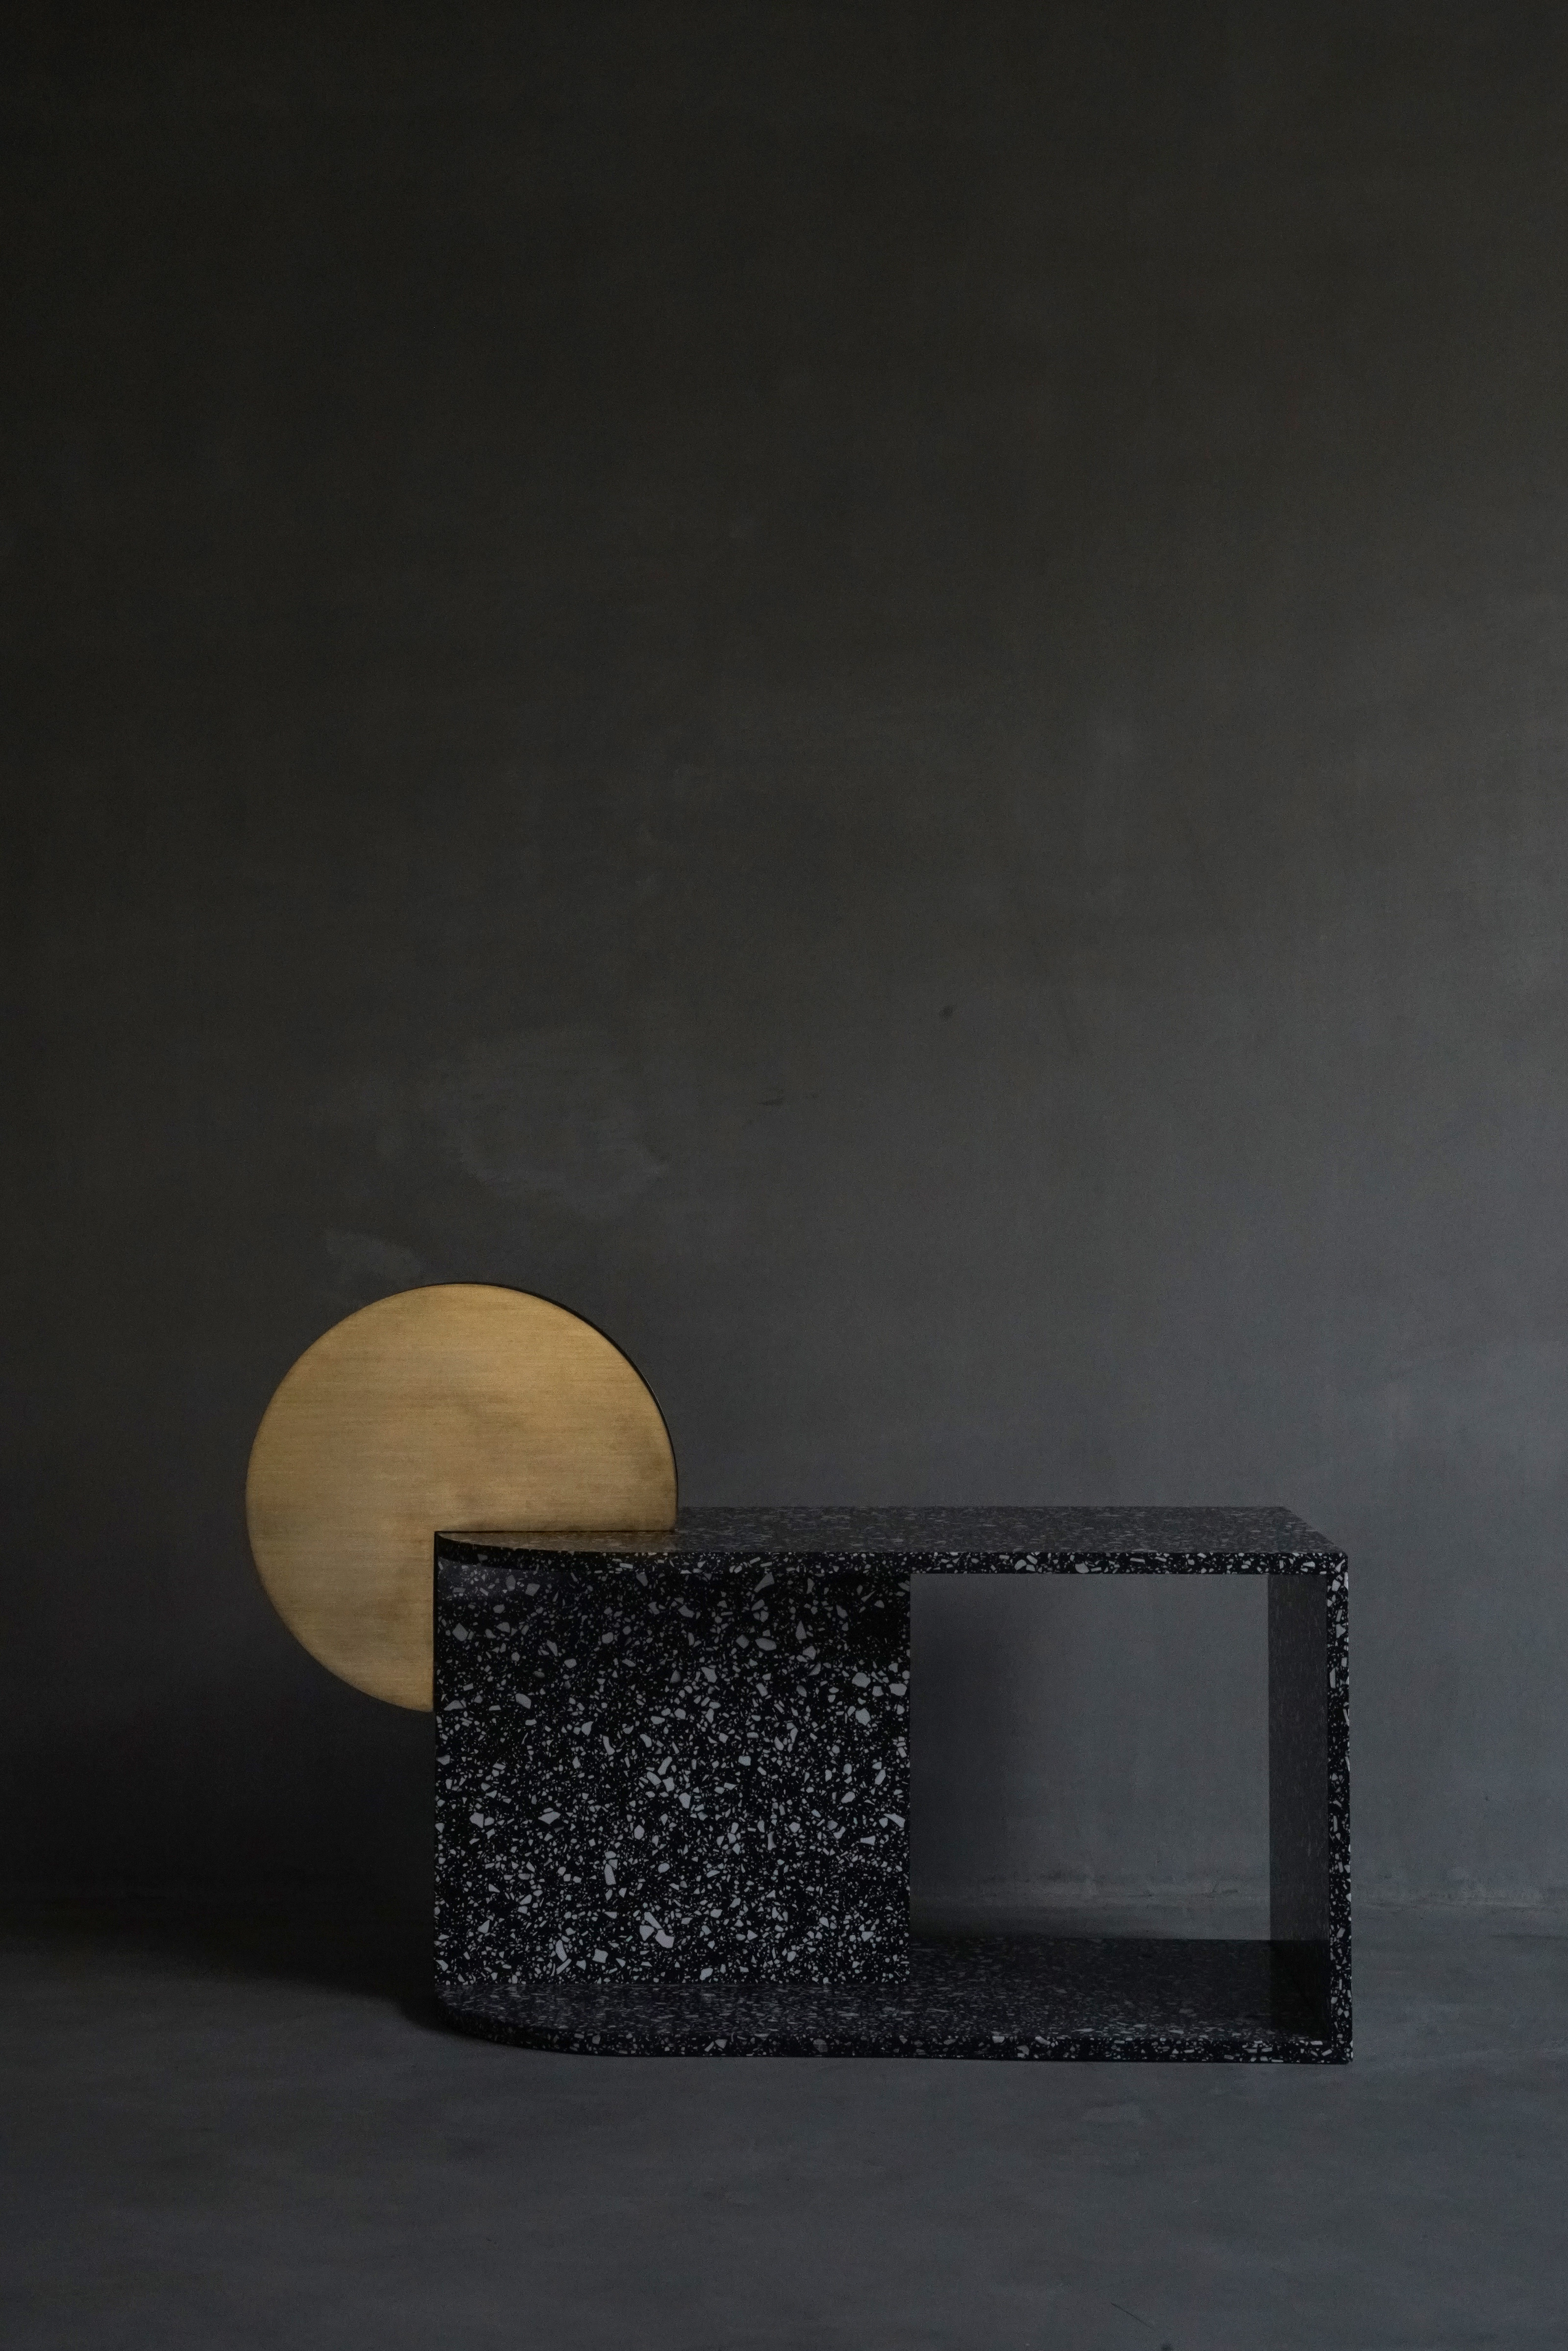 On the occasion of Maison&Objet, Urbancraft presented new works including terrazzo, glass and marble low tables.